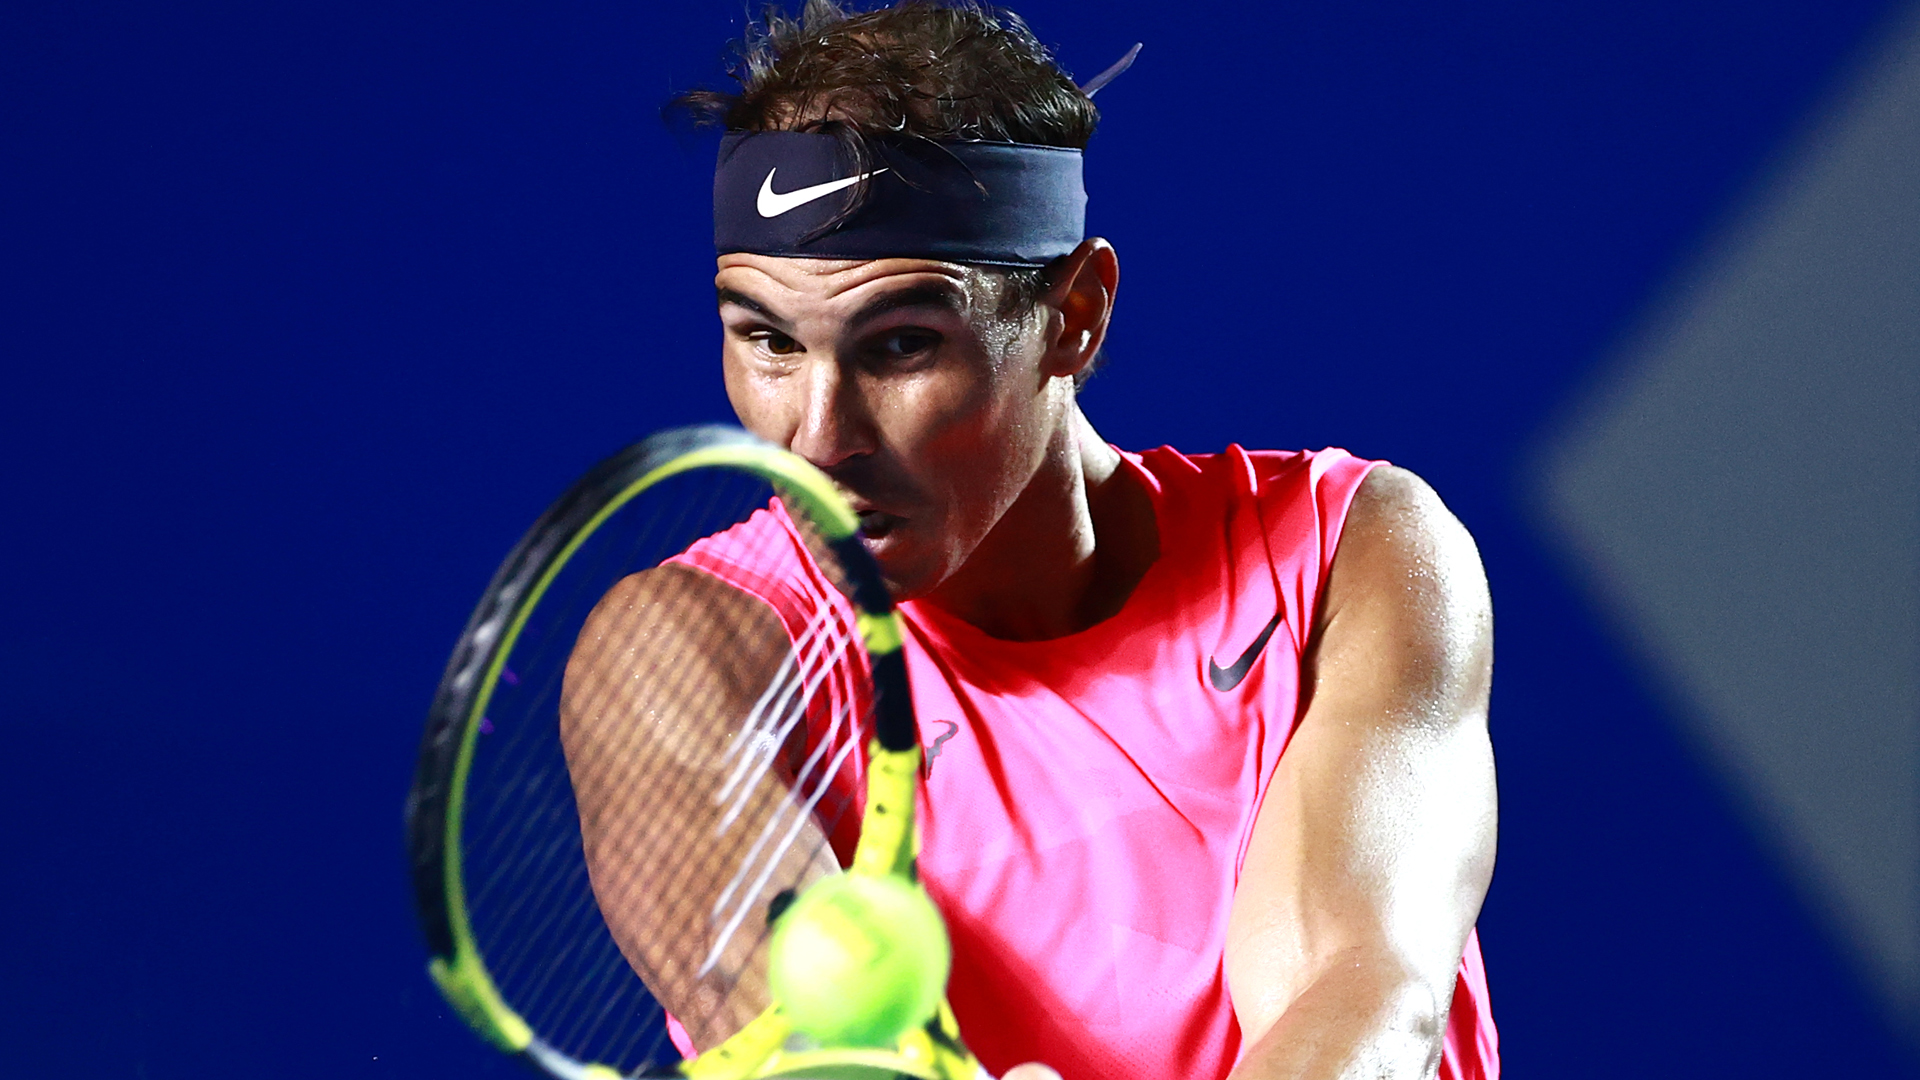 Nadal and Zverev through in Acapulco, Kyrgios booed as title defence ends